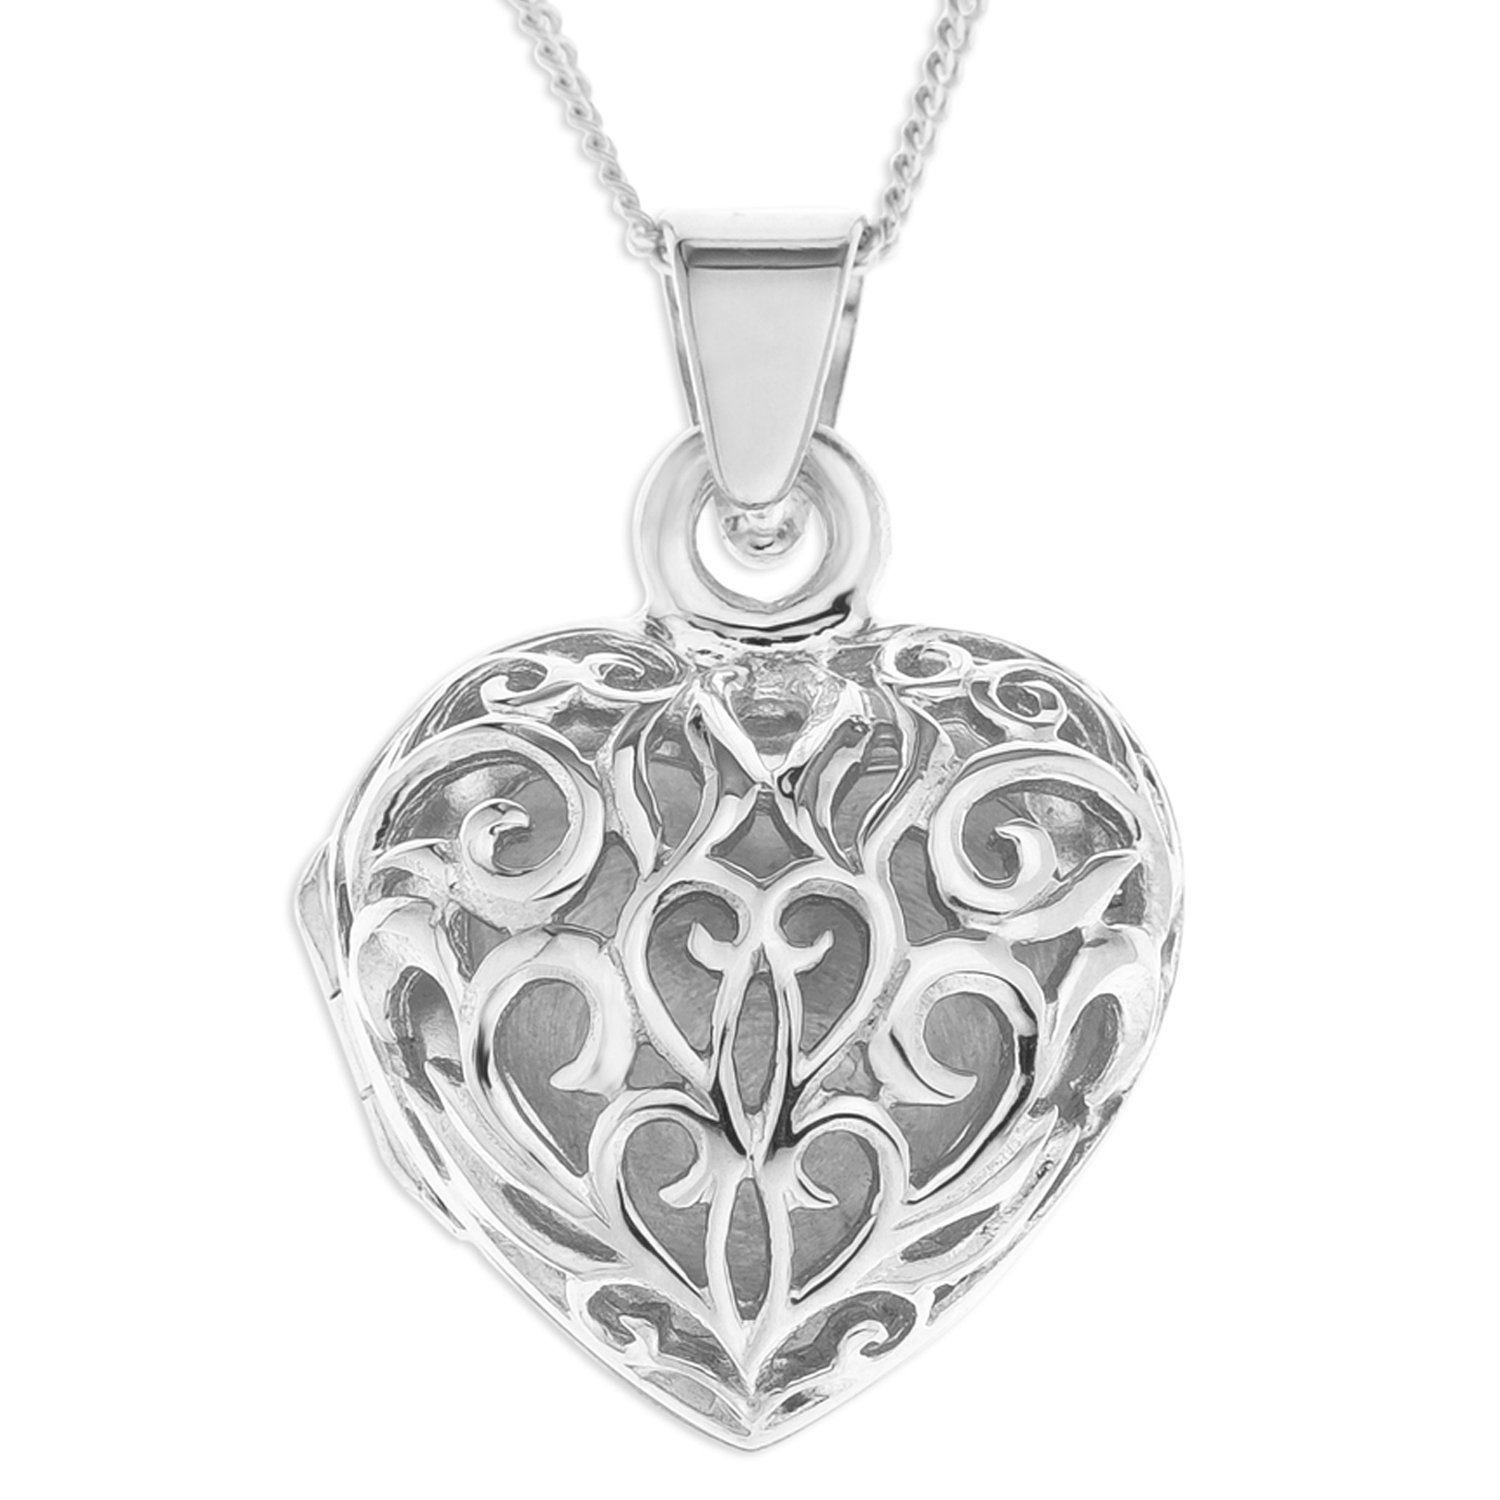 aromaatherapy essential in xsh silver heart lockets necklace jewelry necklaces with pendant oil diffuser item filigree chain from perfume